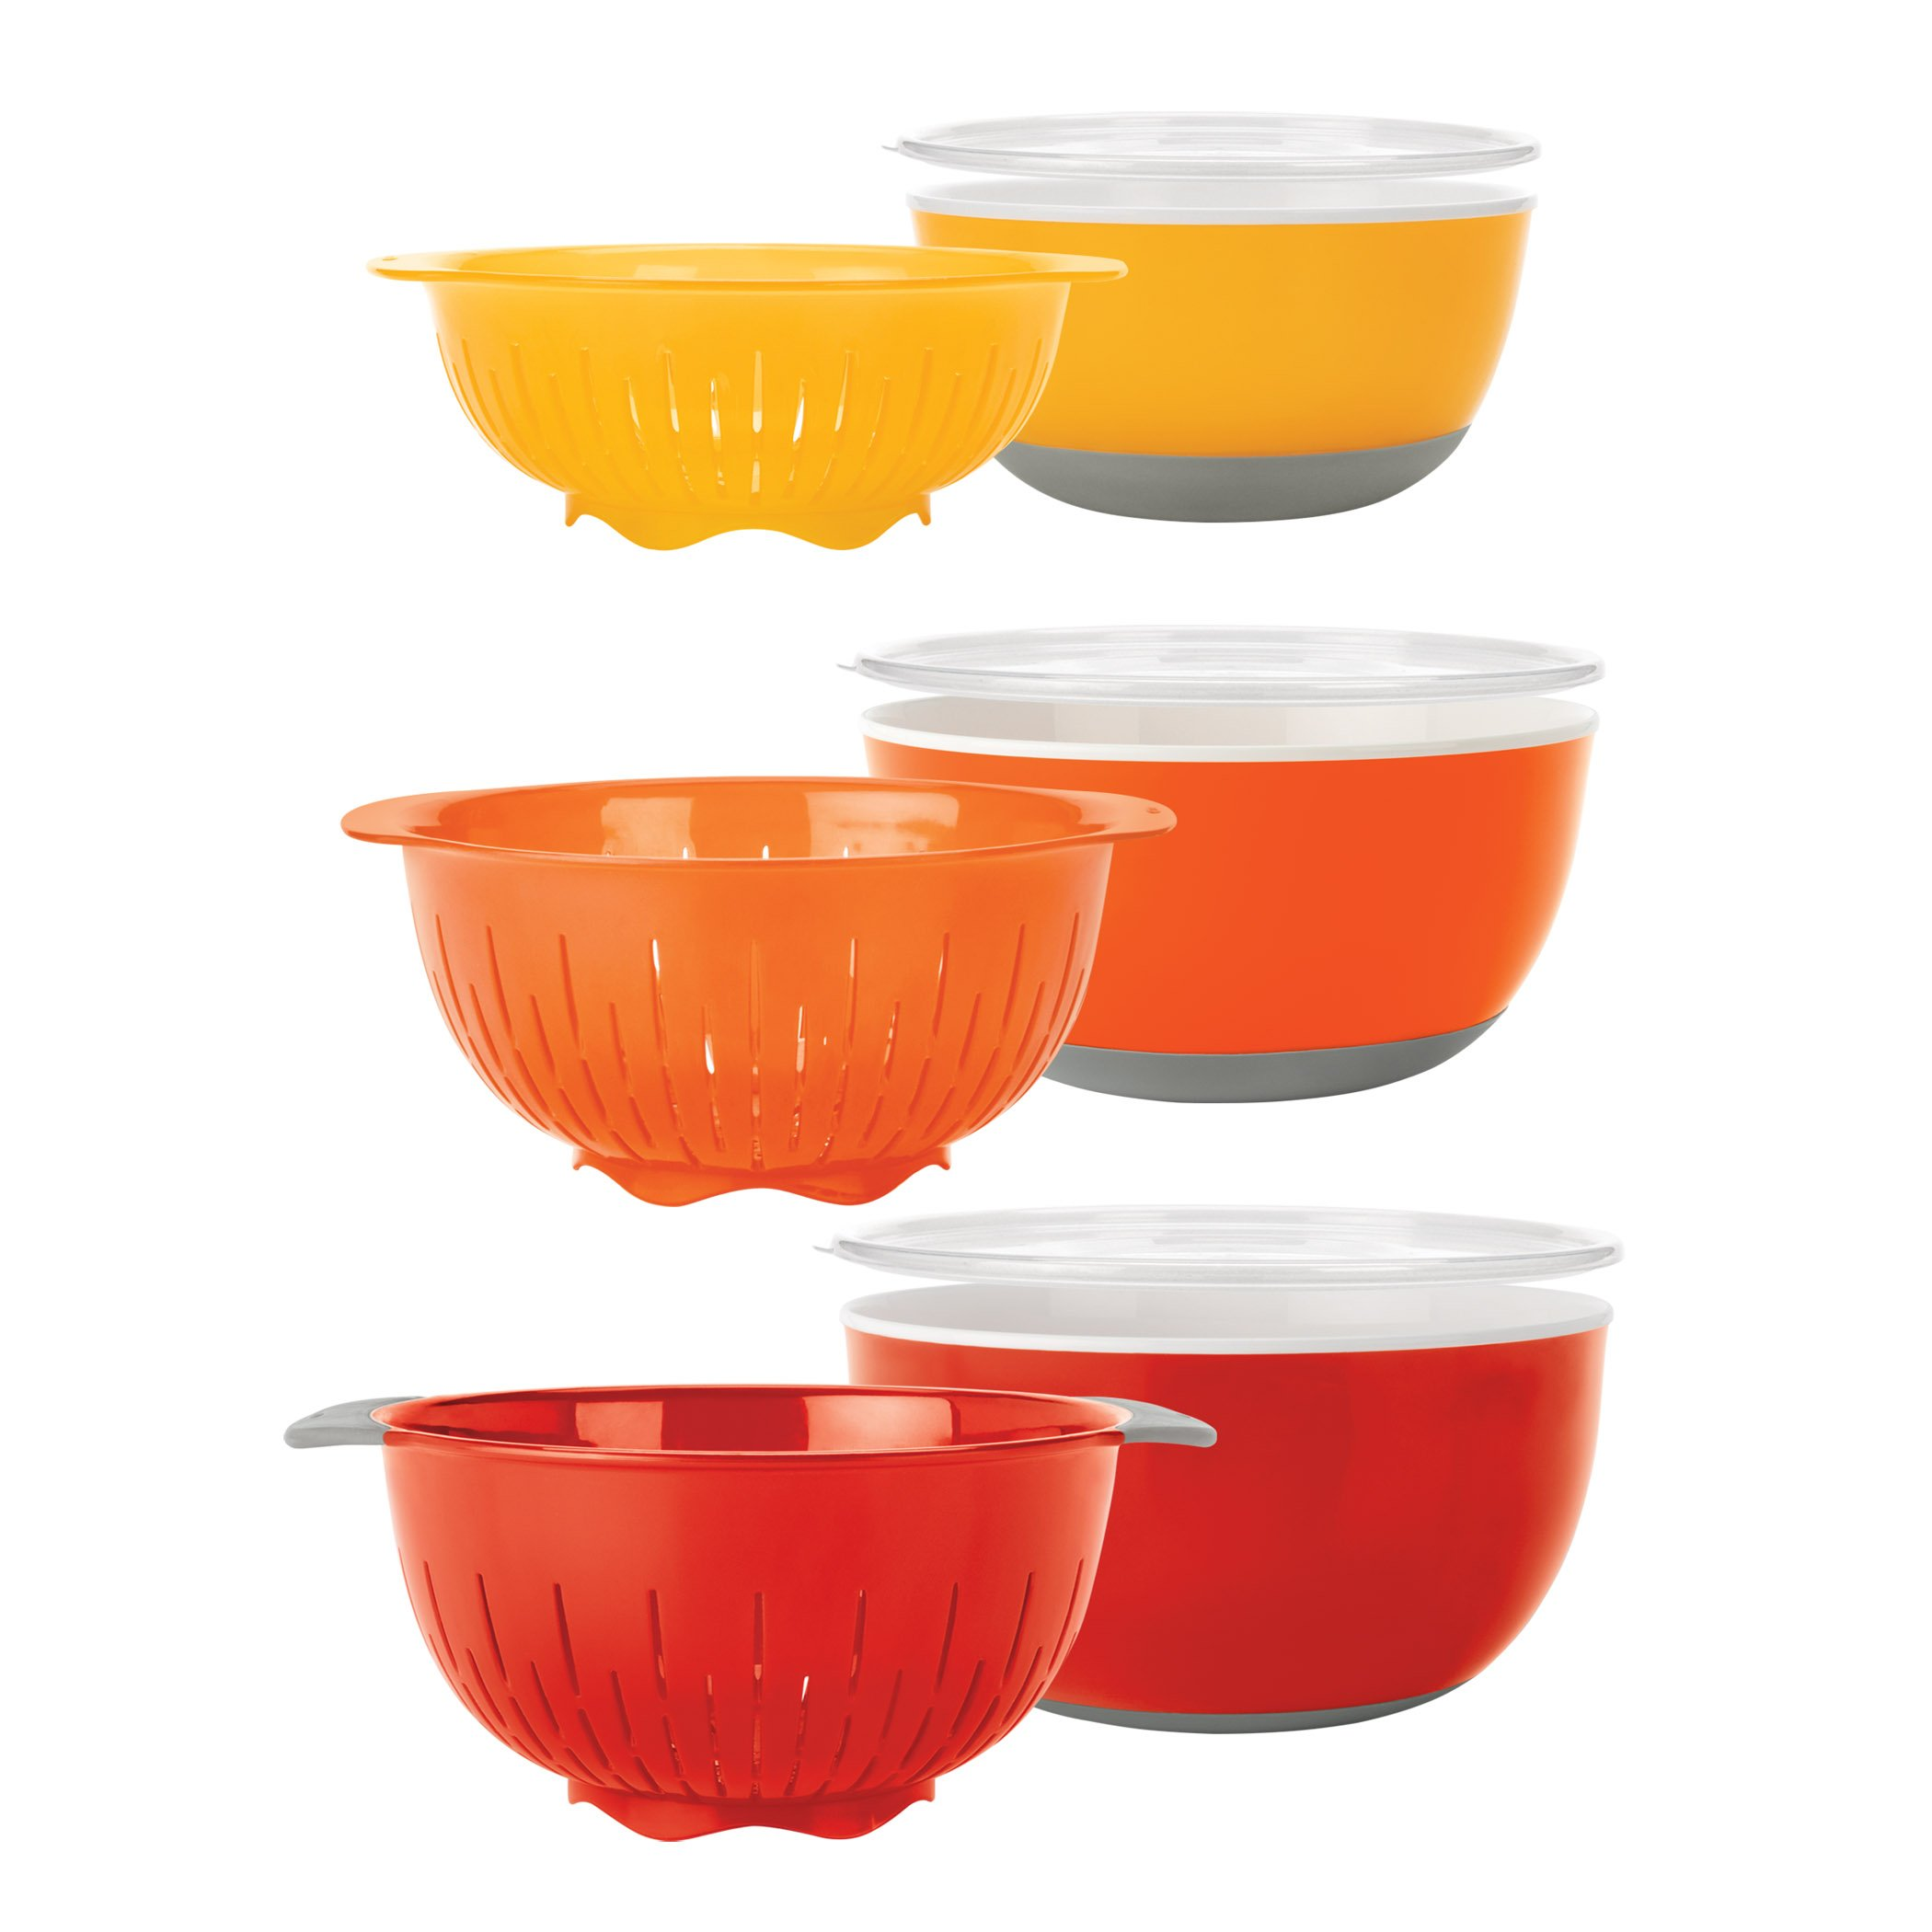 OXO Good Grips 9-Piece Nesting Bowls and Colanders Set, Yellow/Orange/Red